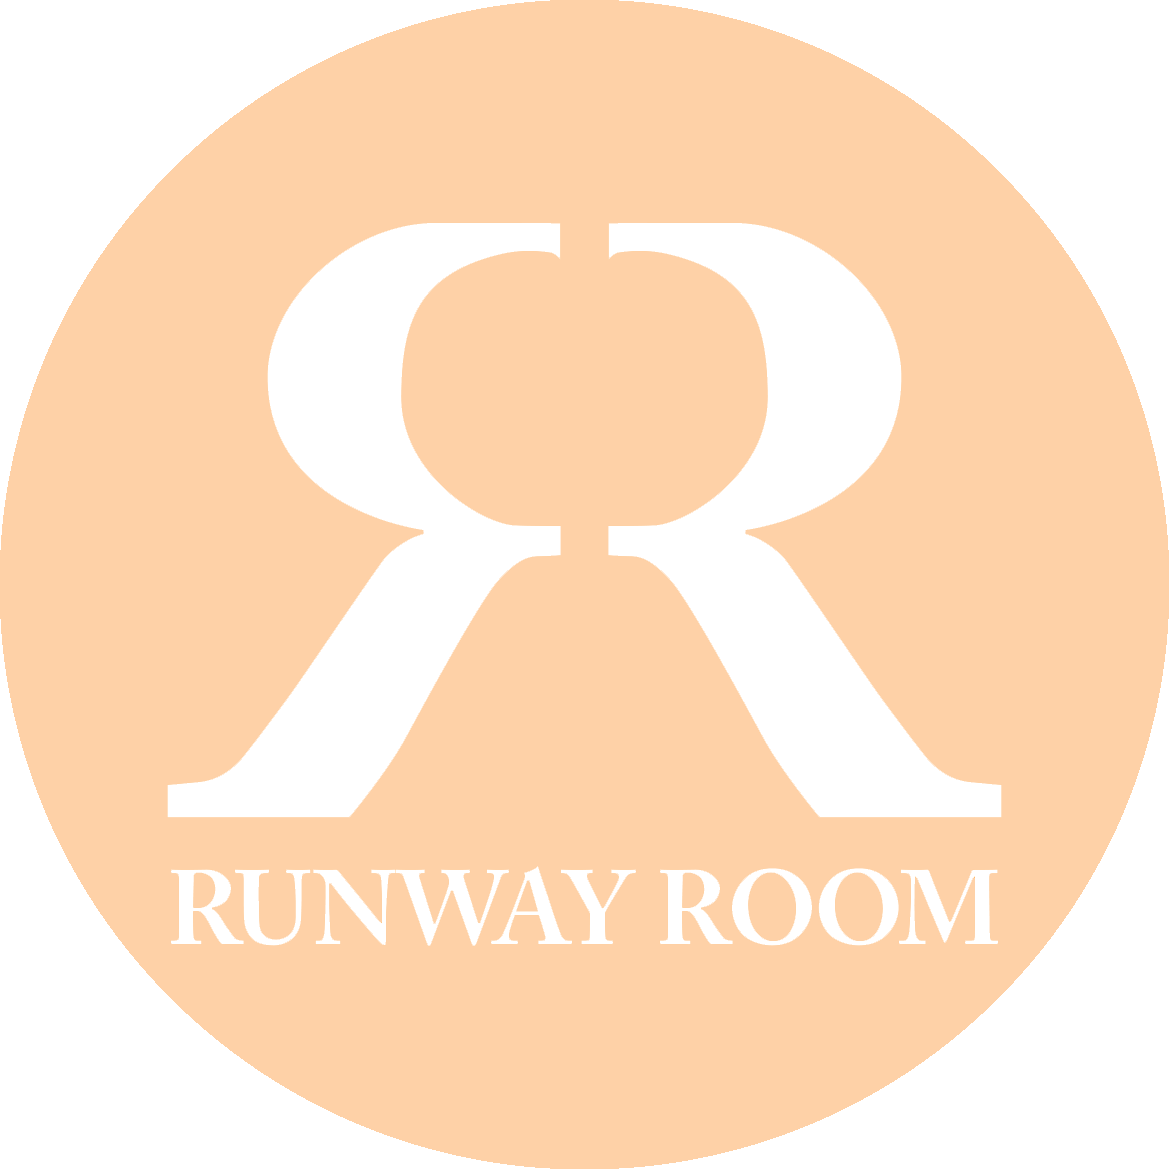 Runway Room Cosmetics